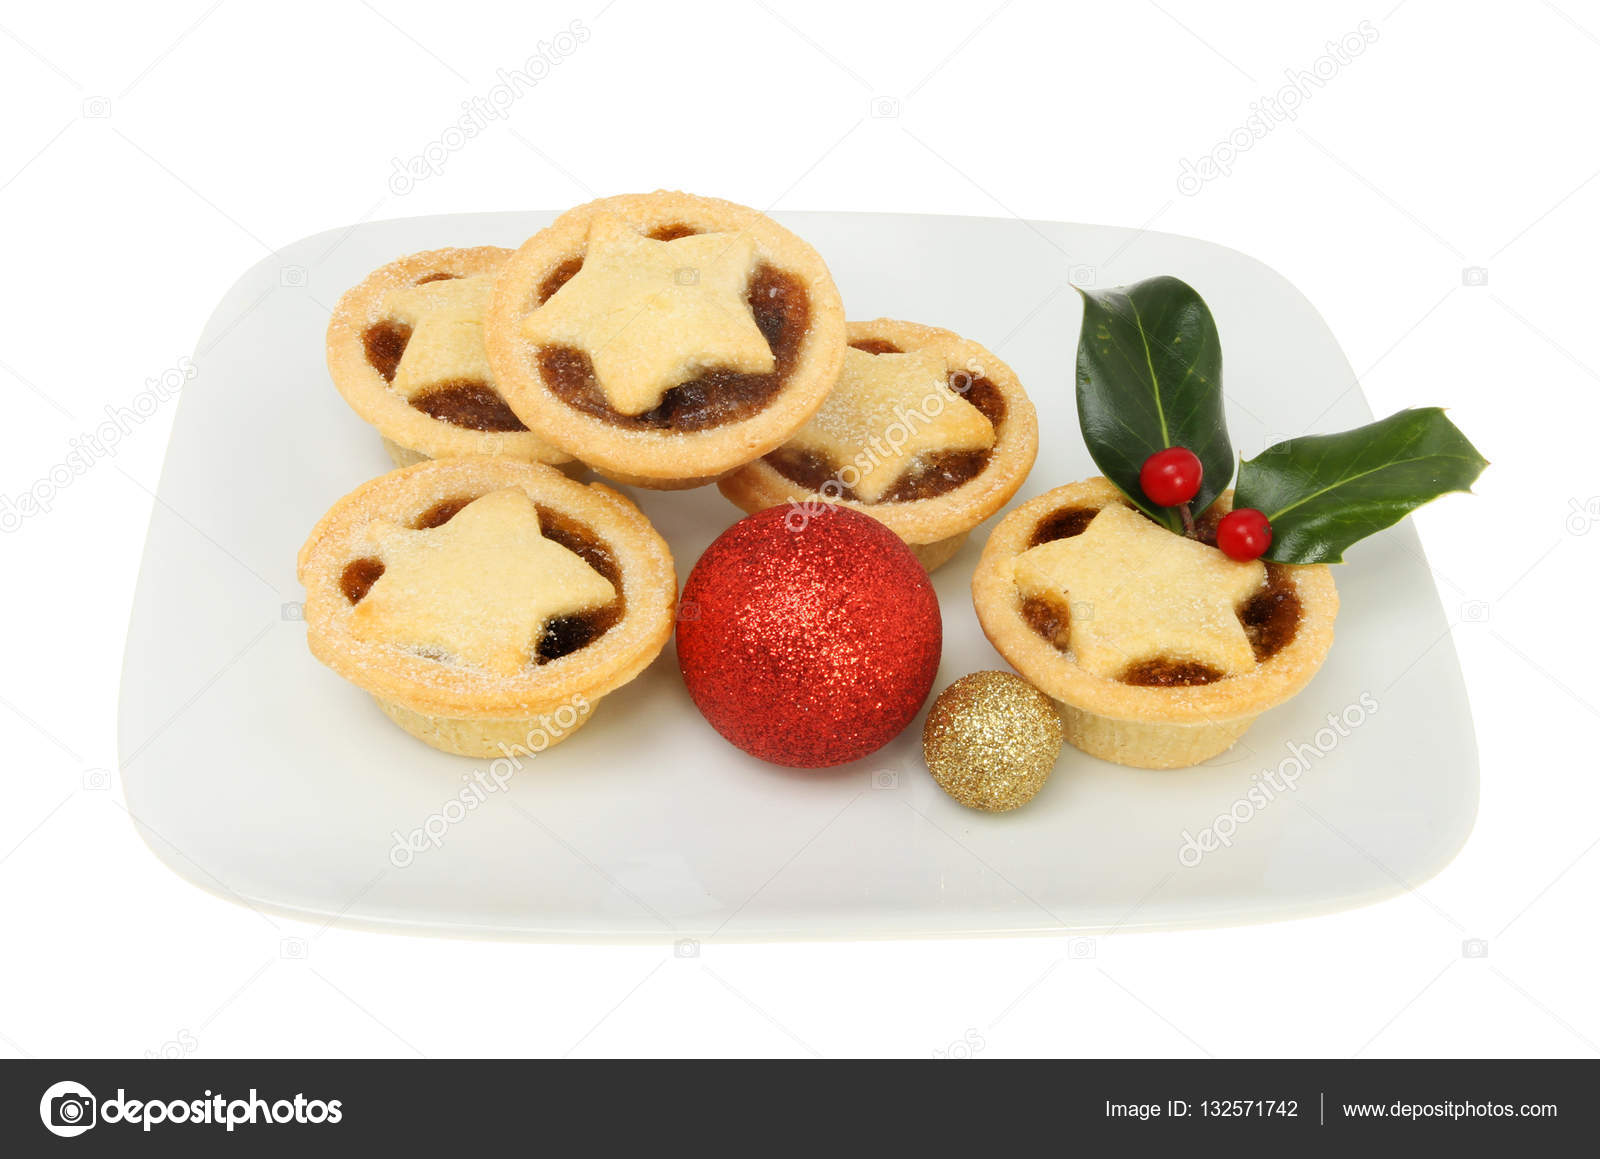 Mince pies on a plate with decorations u2014 Stock Photo  sc 1 st  Depositphotos & Mince pies on a plate with decorations u2014 Stock Photo © griffin024 ...